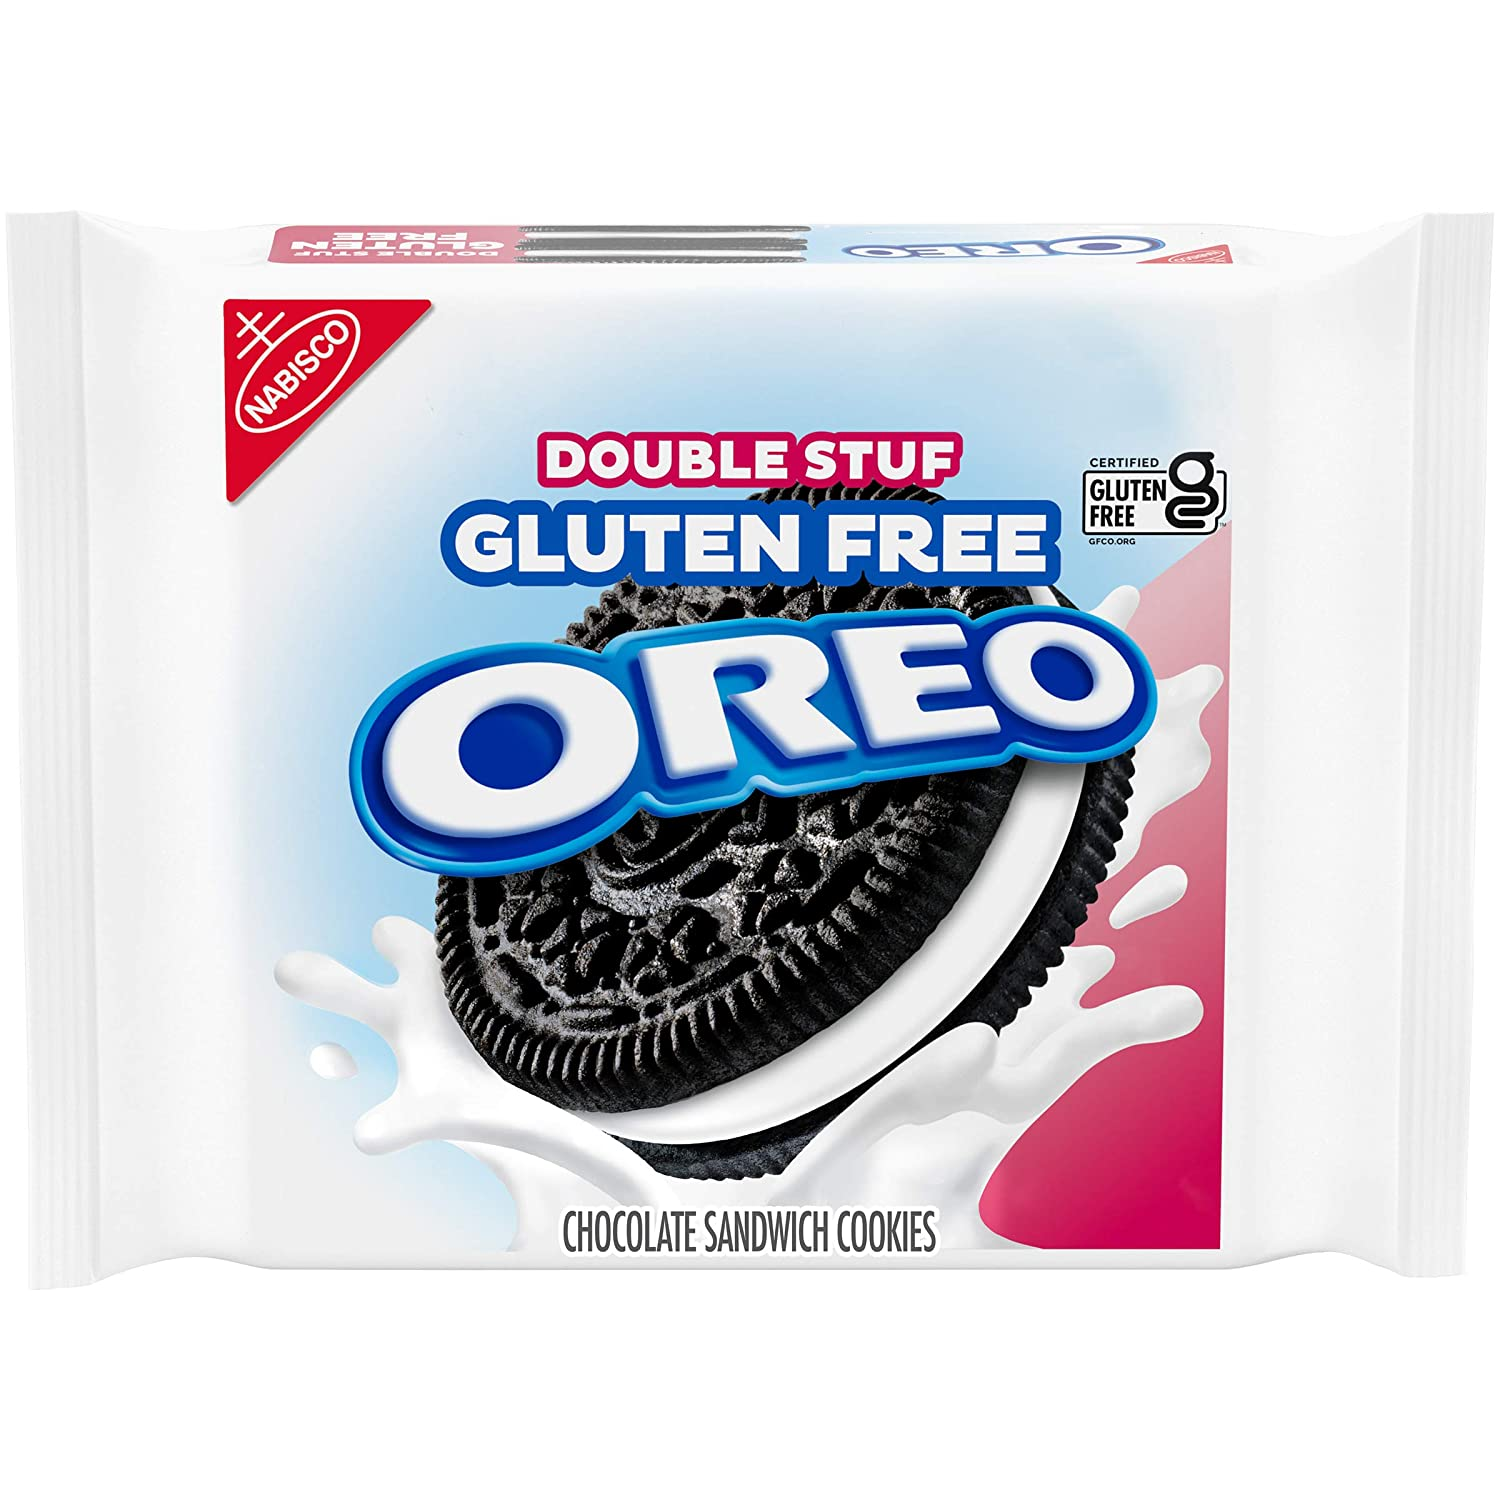 Oreo Double Stuf Gluten Free Sandwich Cookies 14.03 oz, Chocolate, 1 Count